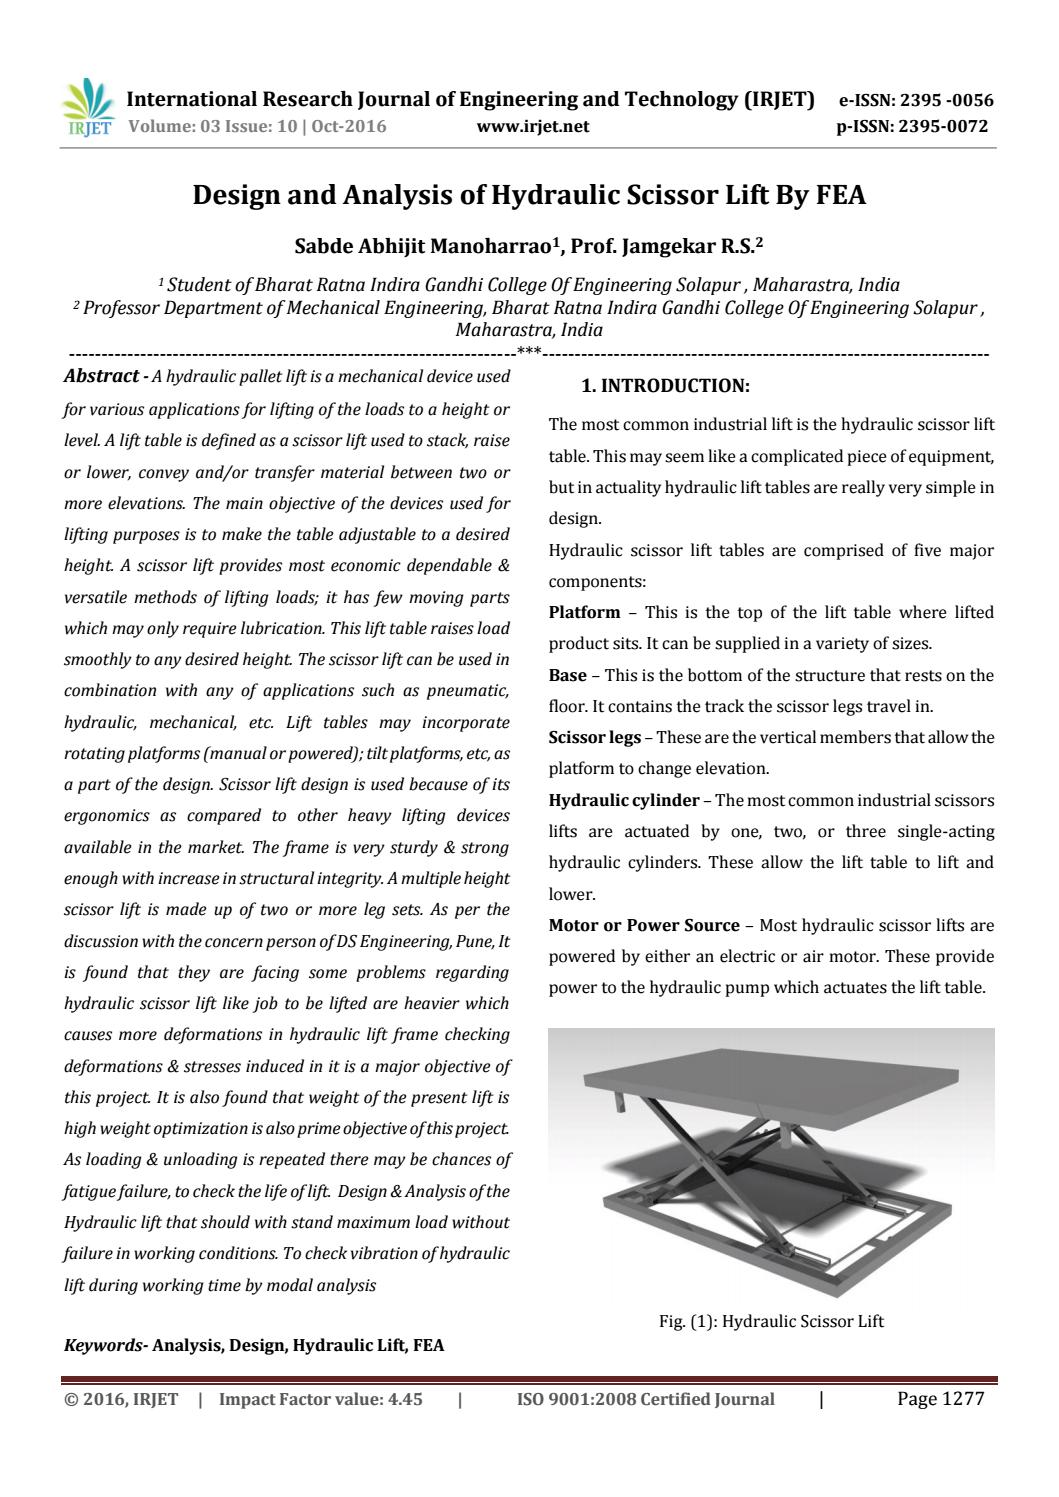 Design and Analysis of Hydraulic Scissor Lift By FEA by